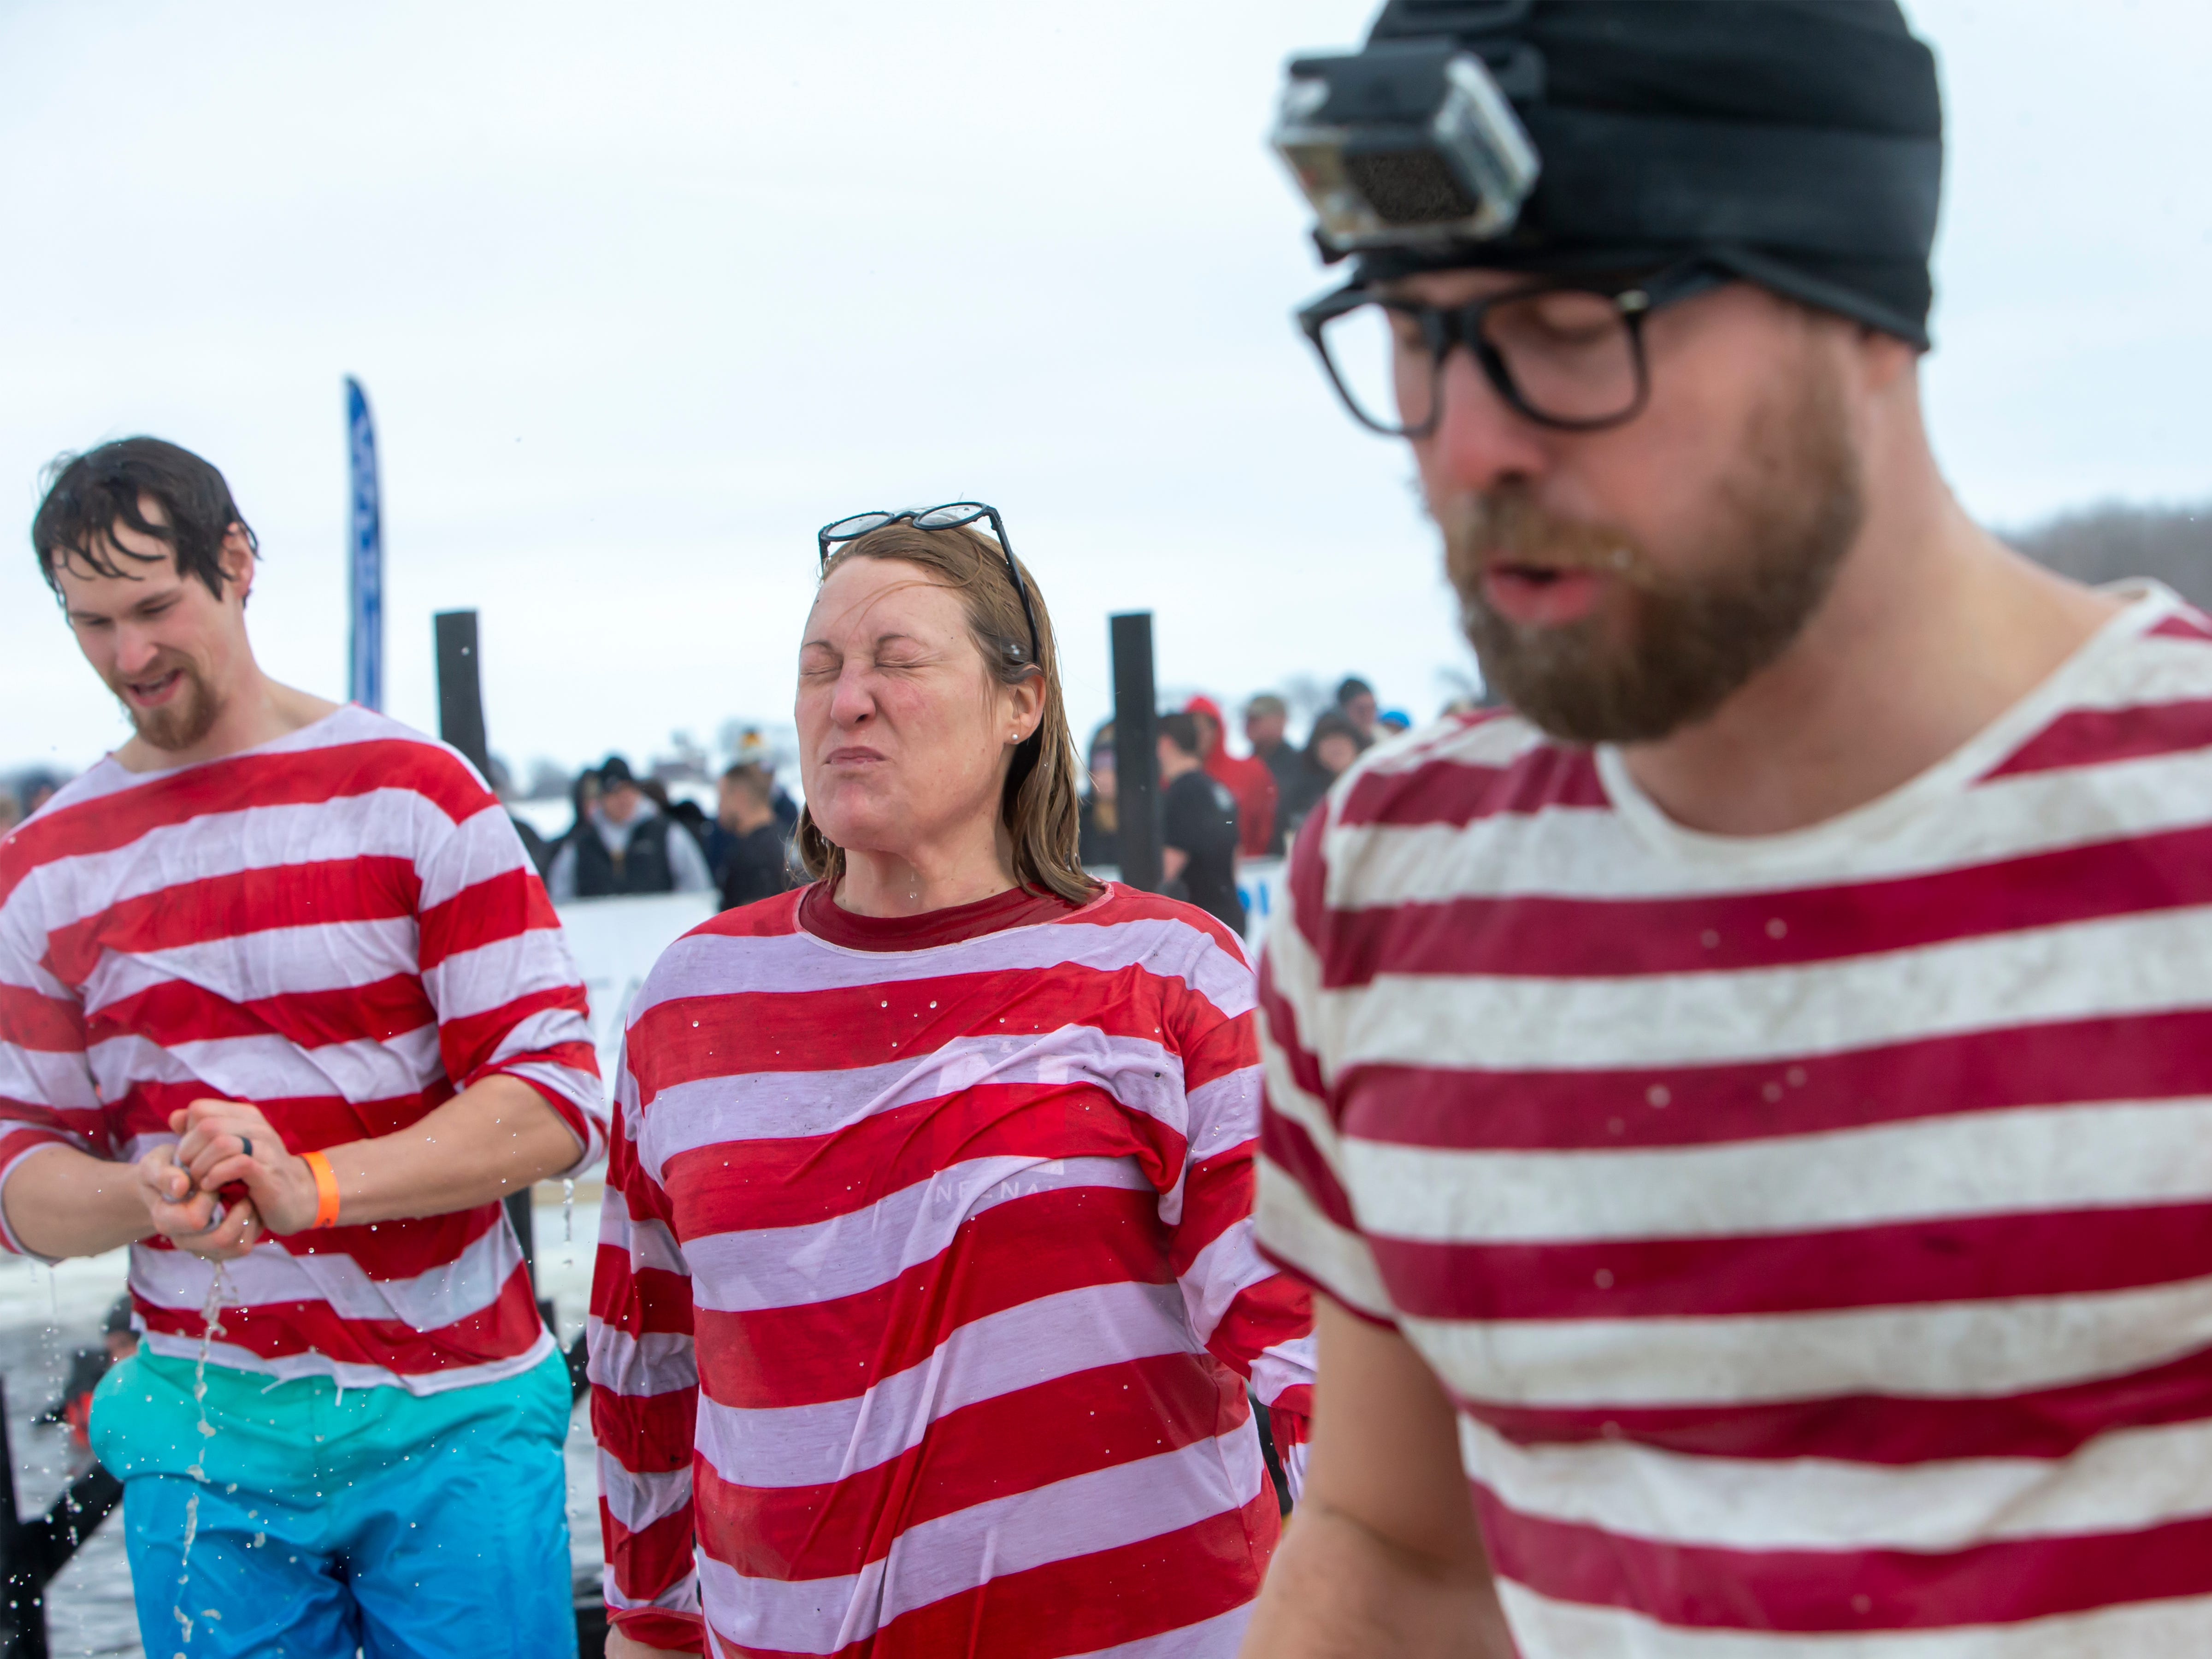 Neenah Inc. employee reacts after taking the plunge during the Special Olympics Wisconsin Polar Plunge in Oshkosh, Wis., on Saturday, February 16, 2019, at Miller's Bay in Menominee Park.